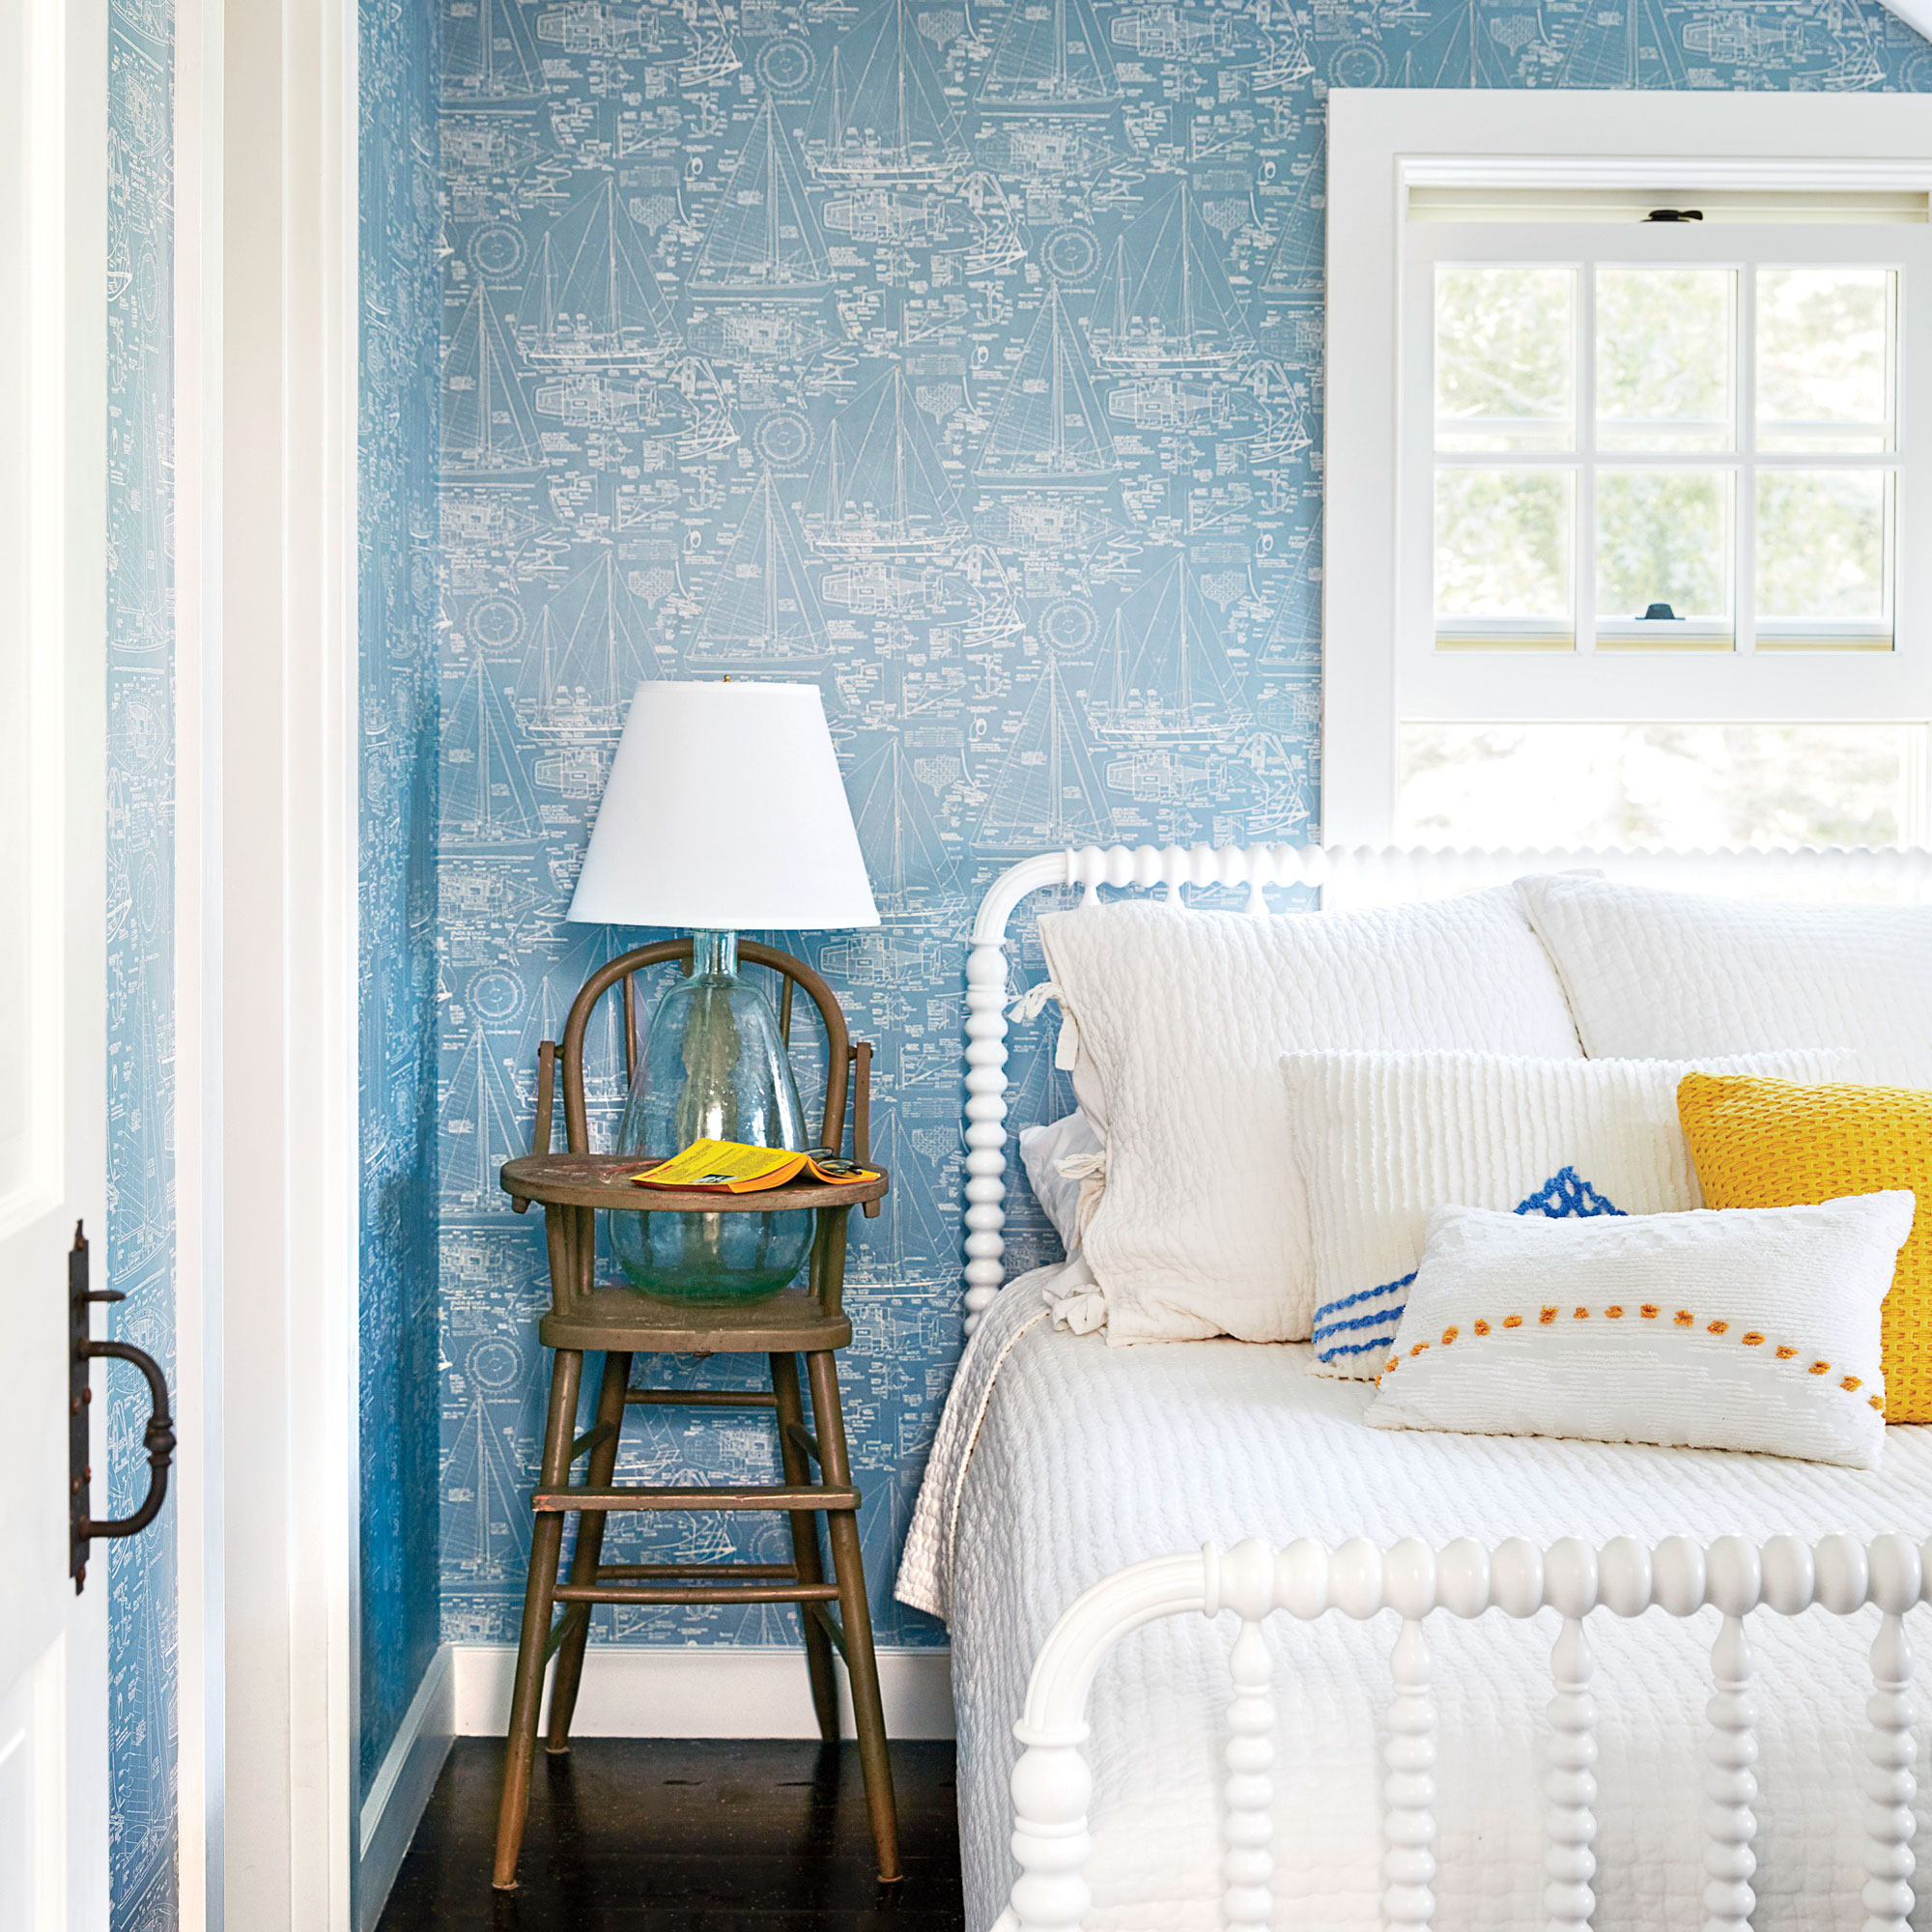 """This soft, vintage-inspired bedroom is a """"graceful reminder of the home's history,"""" says designer Alys Protzman, who brought the historic Cape Cod cottage back to life with bold pops of yellow in nearly every space. In this bedroom however, the signature"""